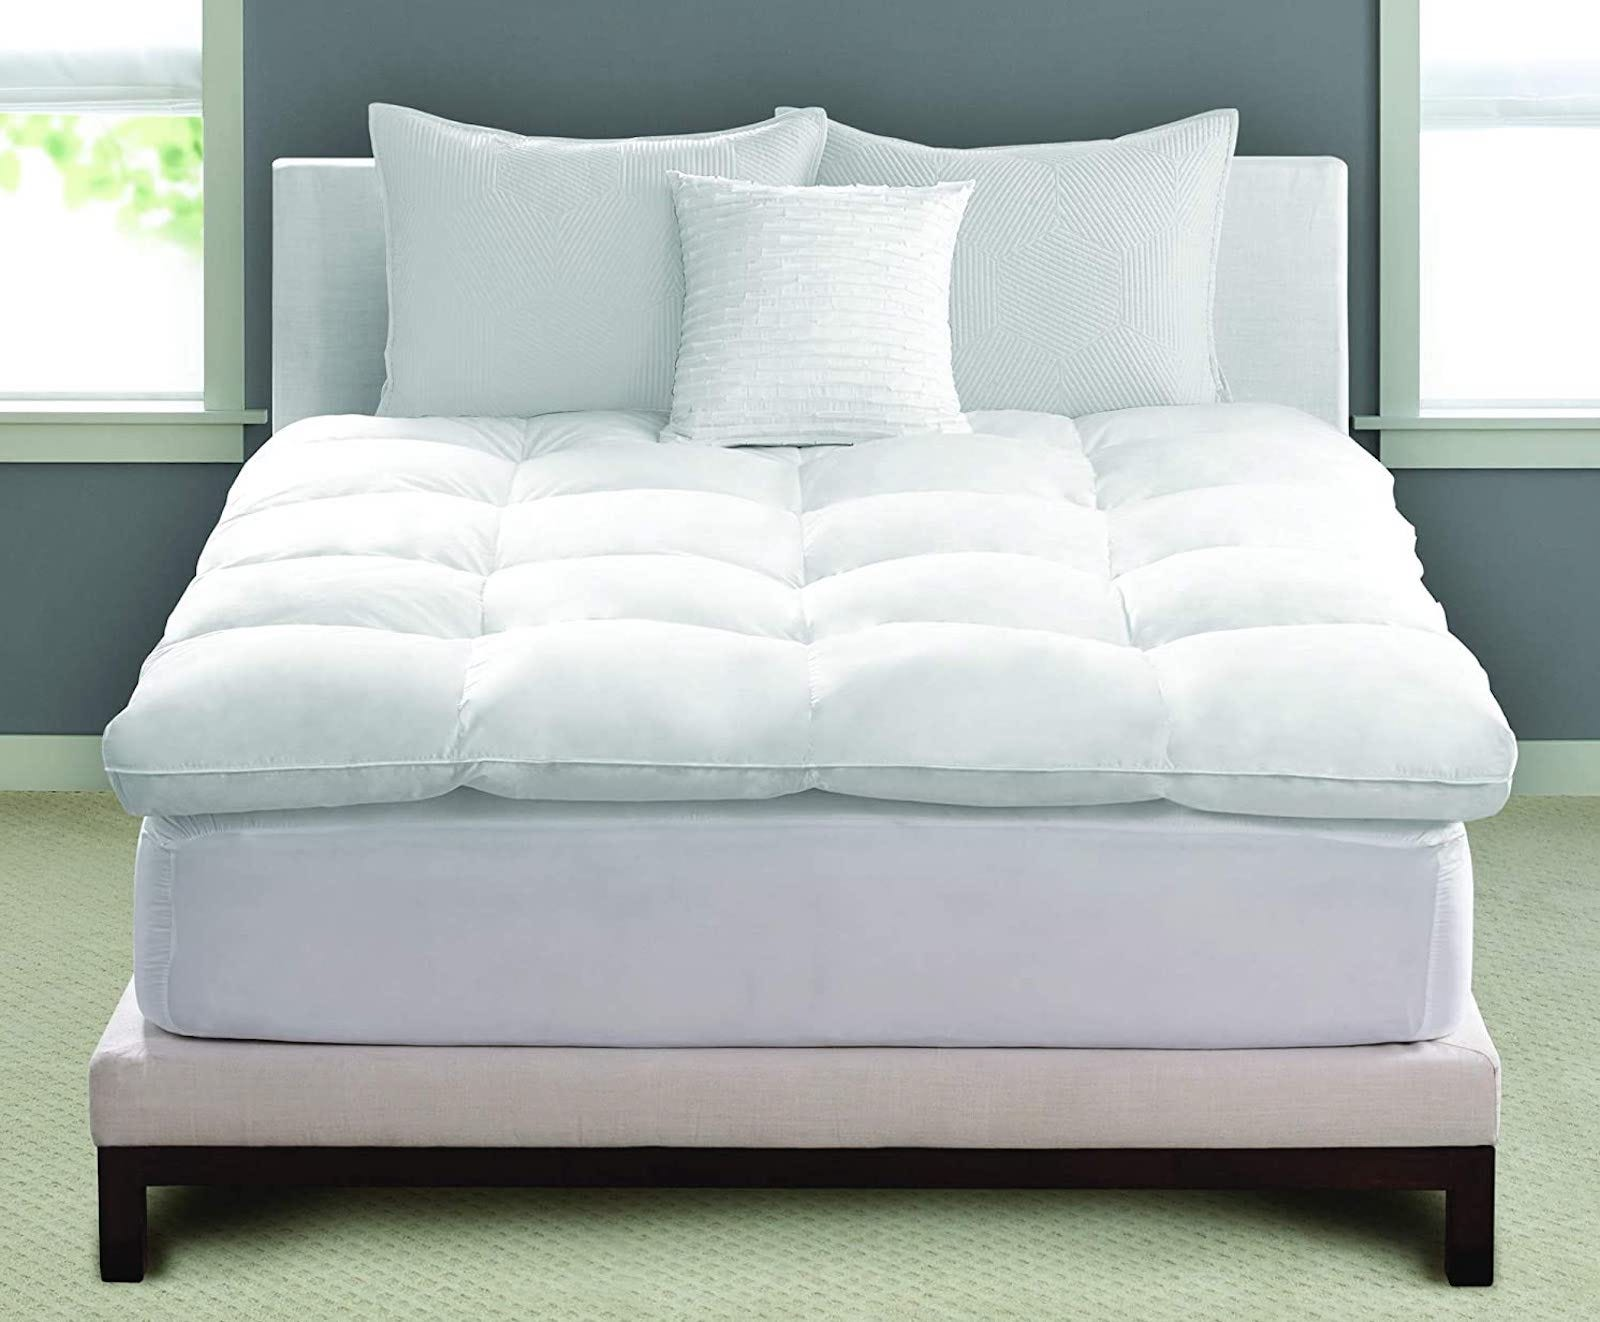 A bed with a white, fluffy mattress topper and three white pillows